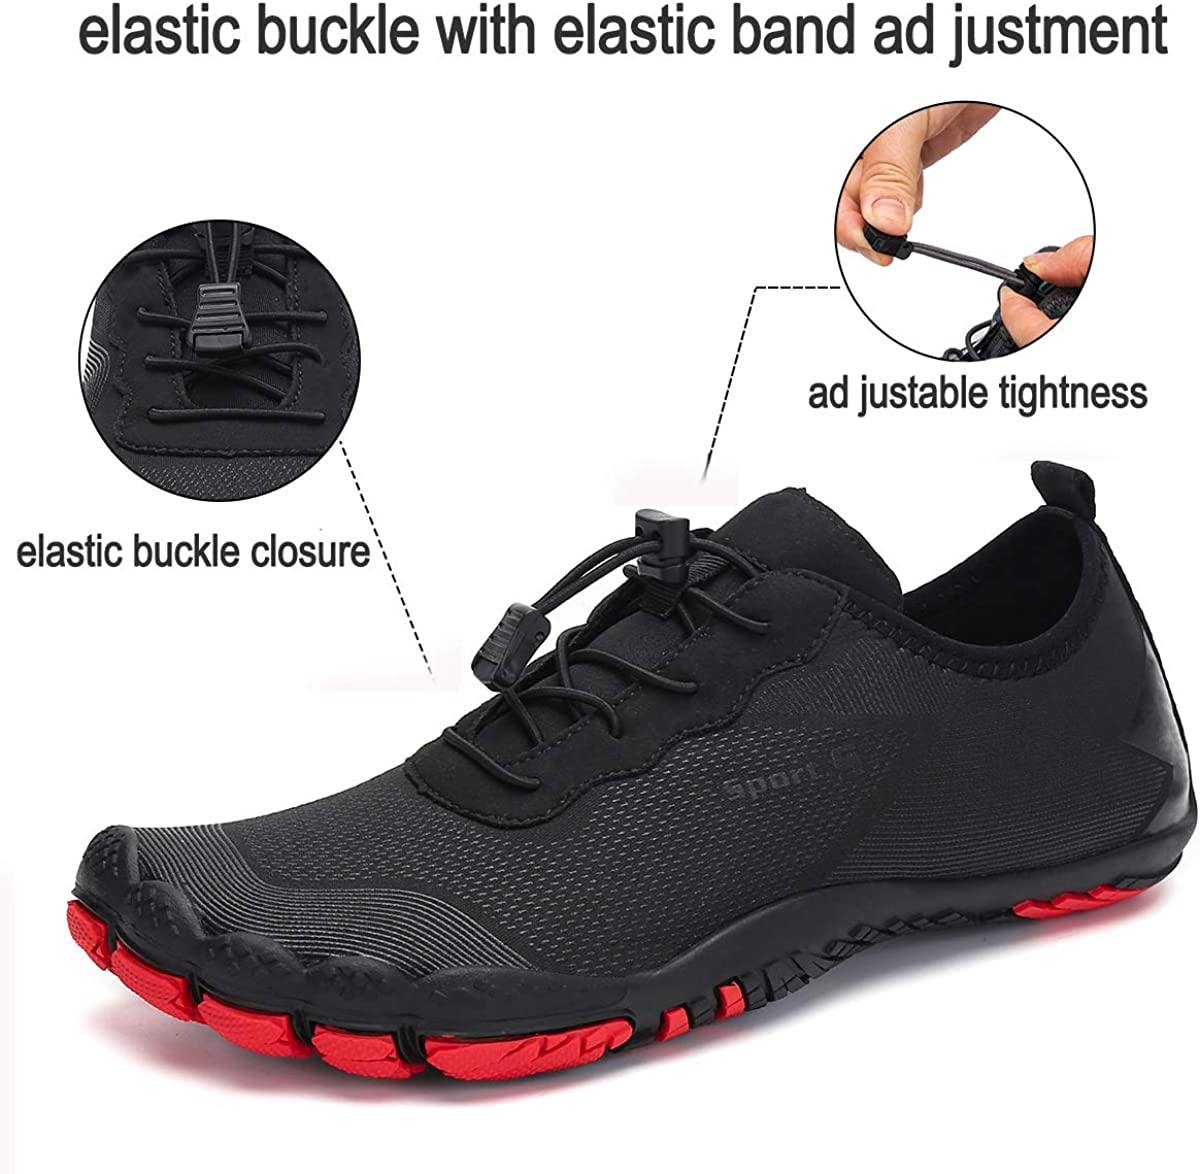 Dannto Mens Hiking Shoes Quick Dry Barefoot Water Shoes Breathable Casual Shoes Sports Aqua Shoes Swim Shoes for Outdoor Hiking Beach Boating Fishing and Leisure Activities